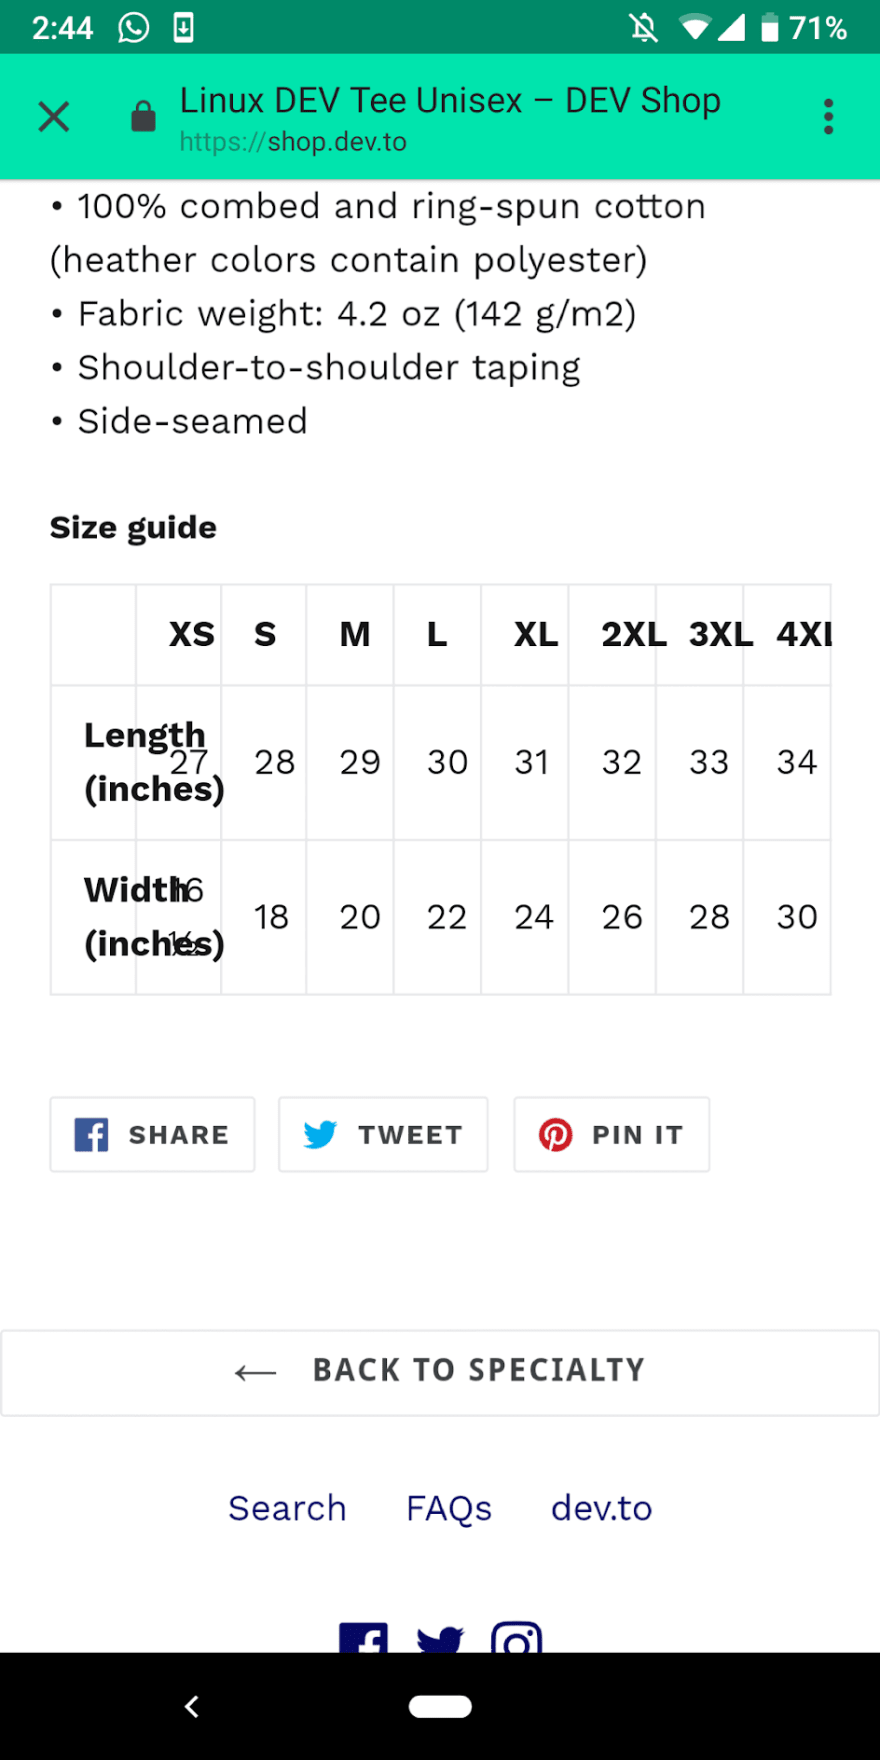 Styling error in the size section